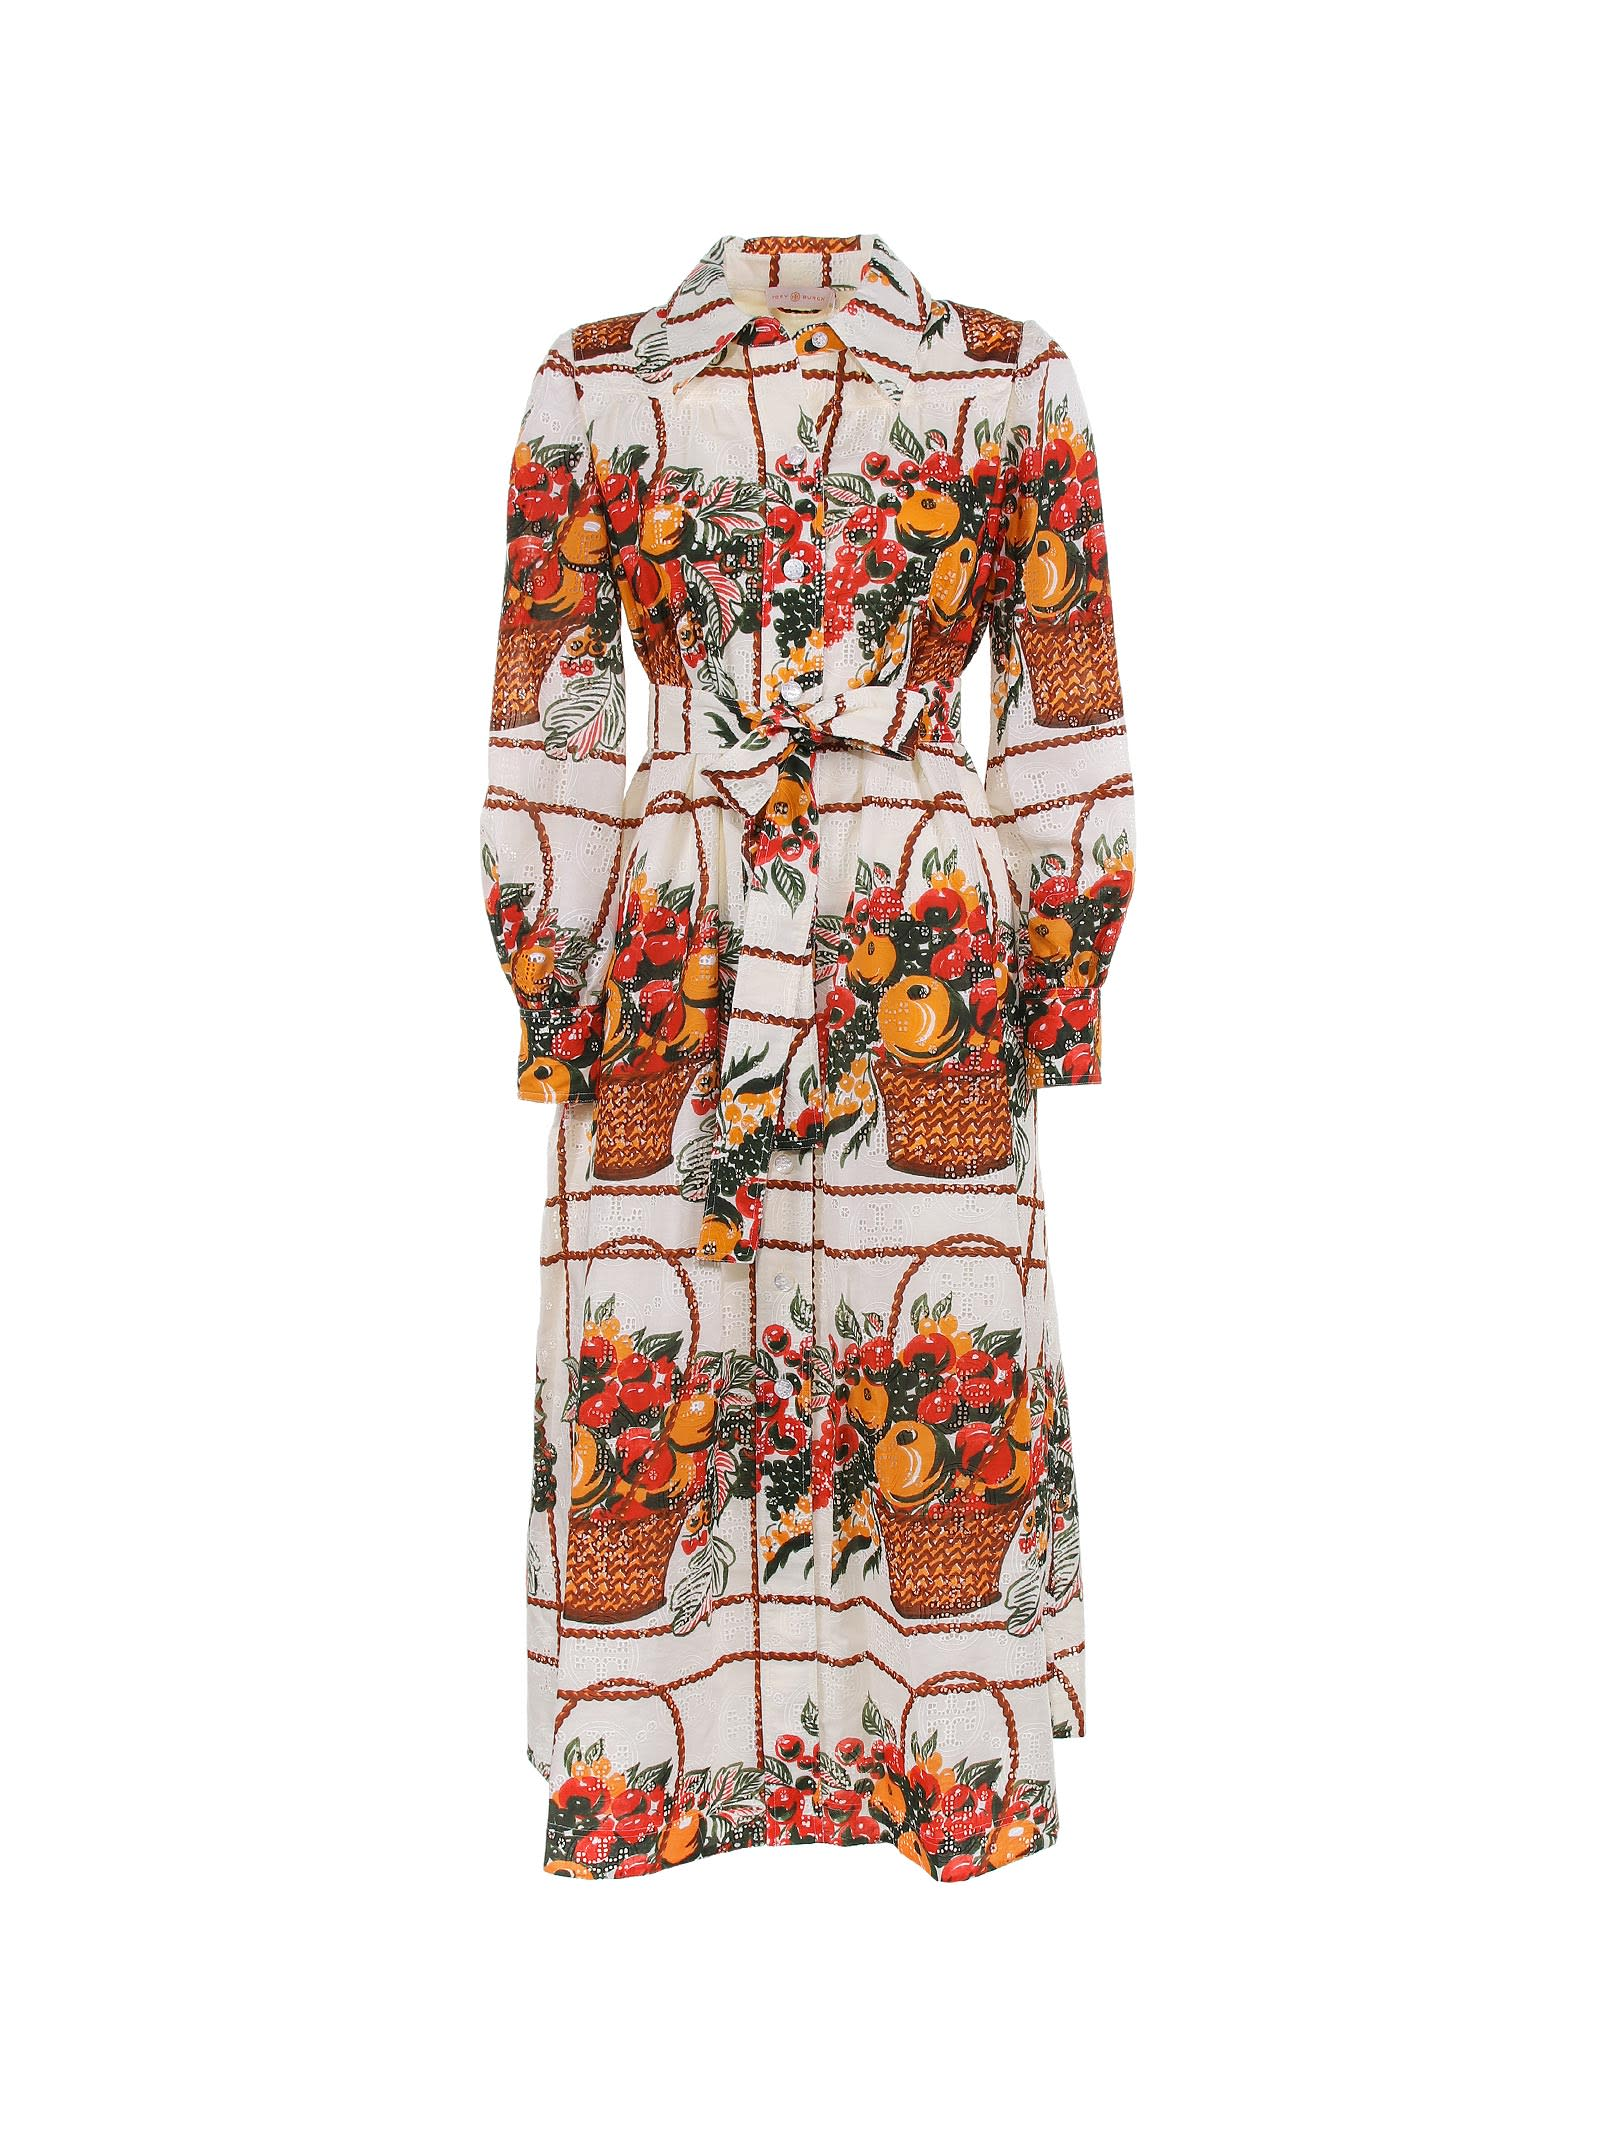 Buy Tory Burch Dress In Cotton online, shop Tory Burch with free shipping